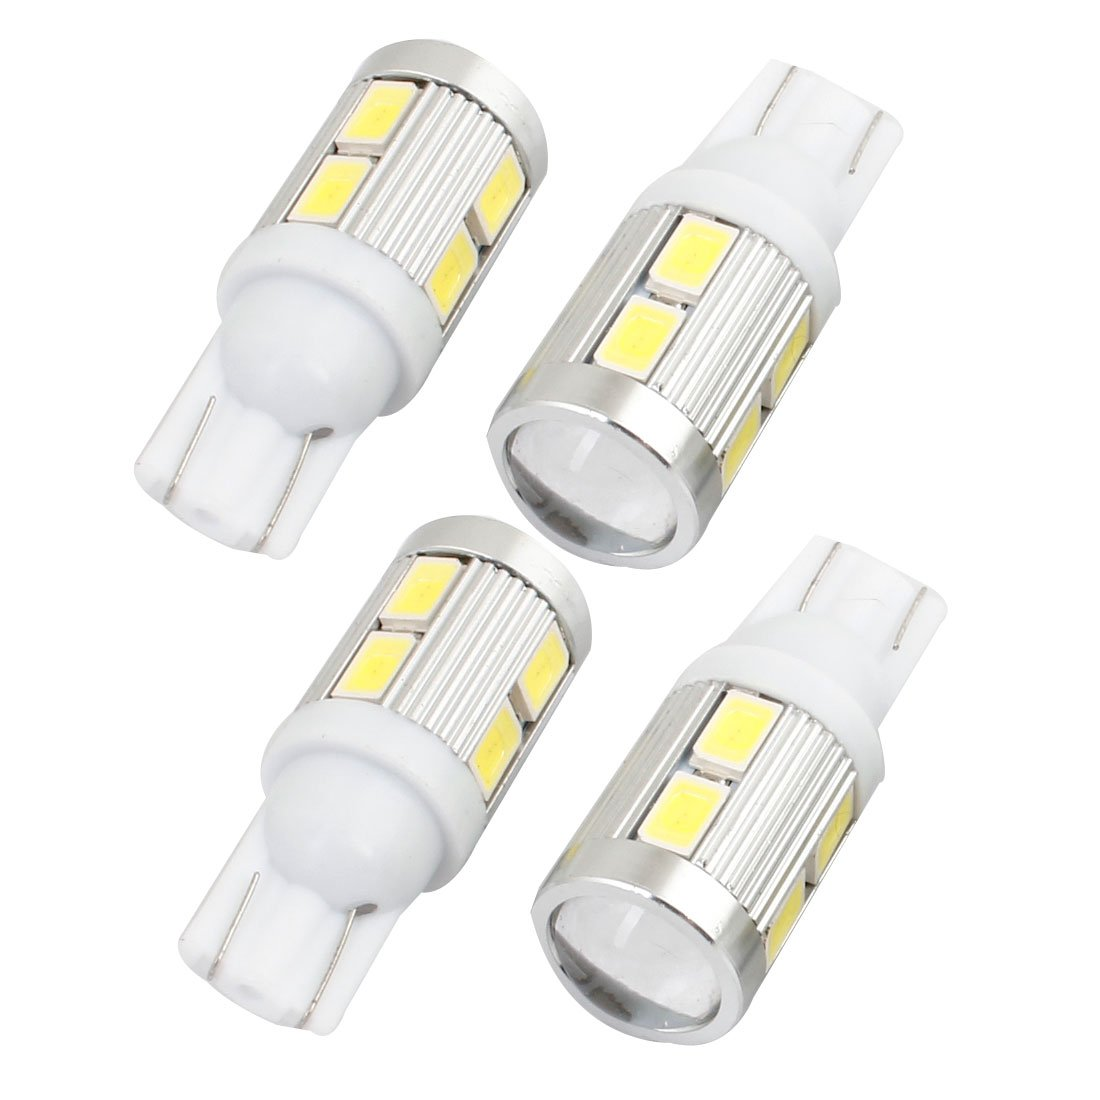 uxcell Van Car T10 10 White 5630 SMD LED Canbus Panel Wedge Lamp Light 4 Pcs internal a14031300ux1139